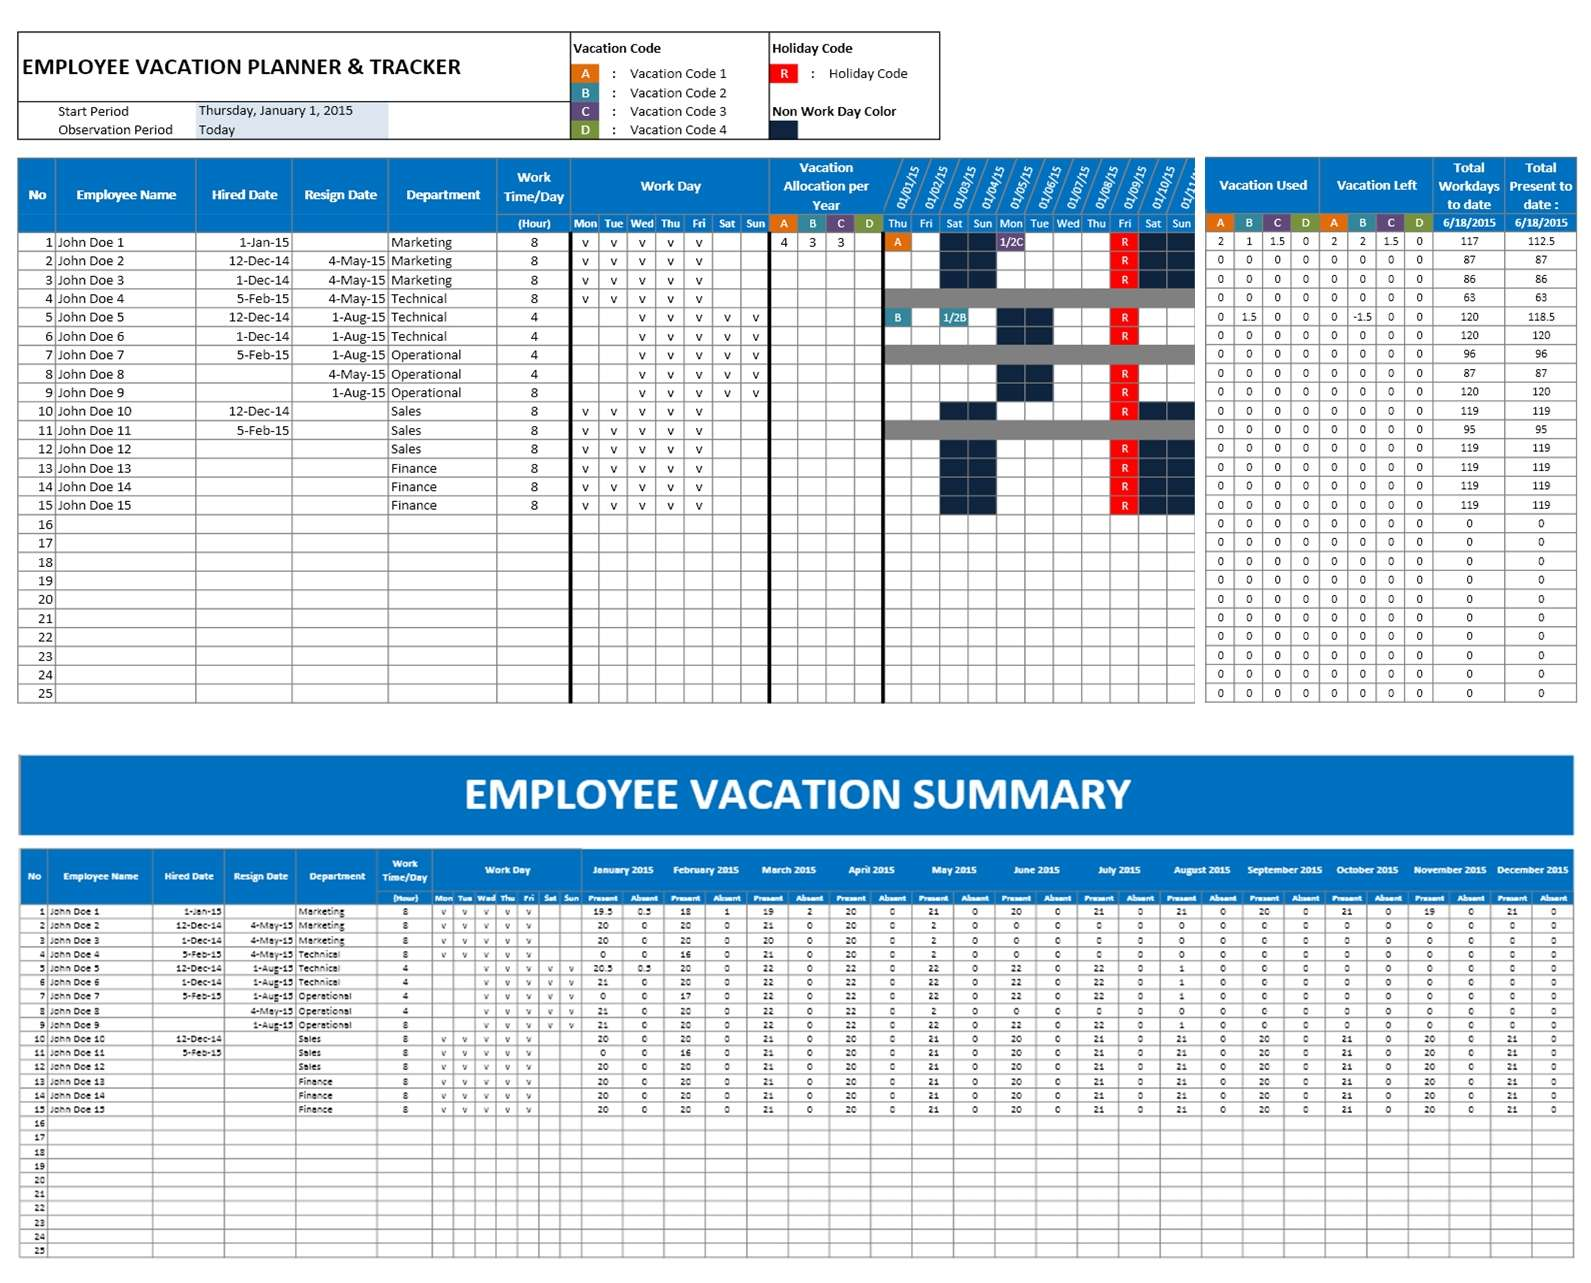 Superior Employee Vacation Planner